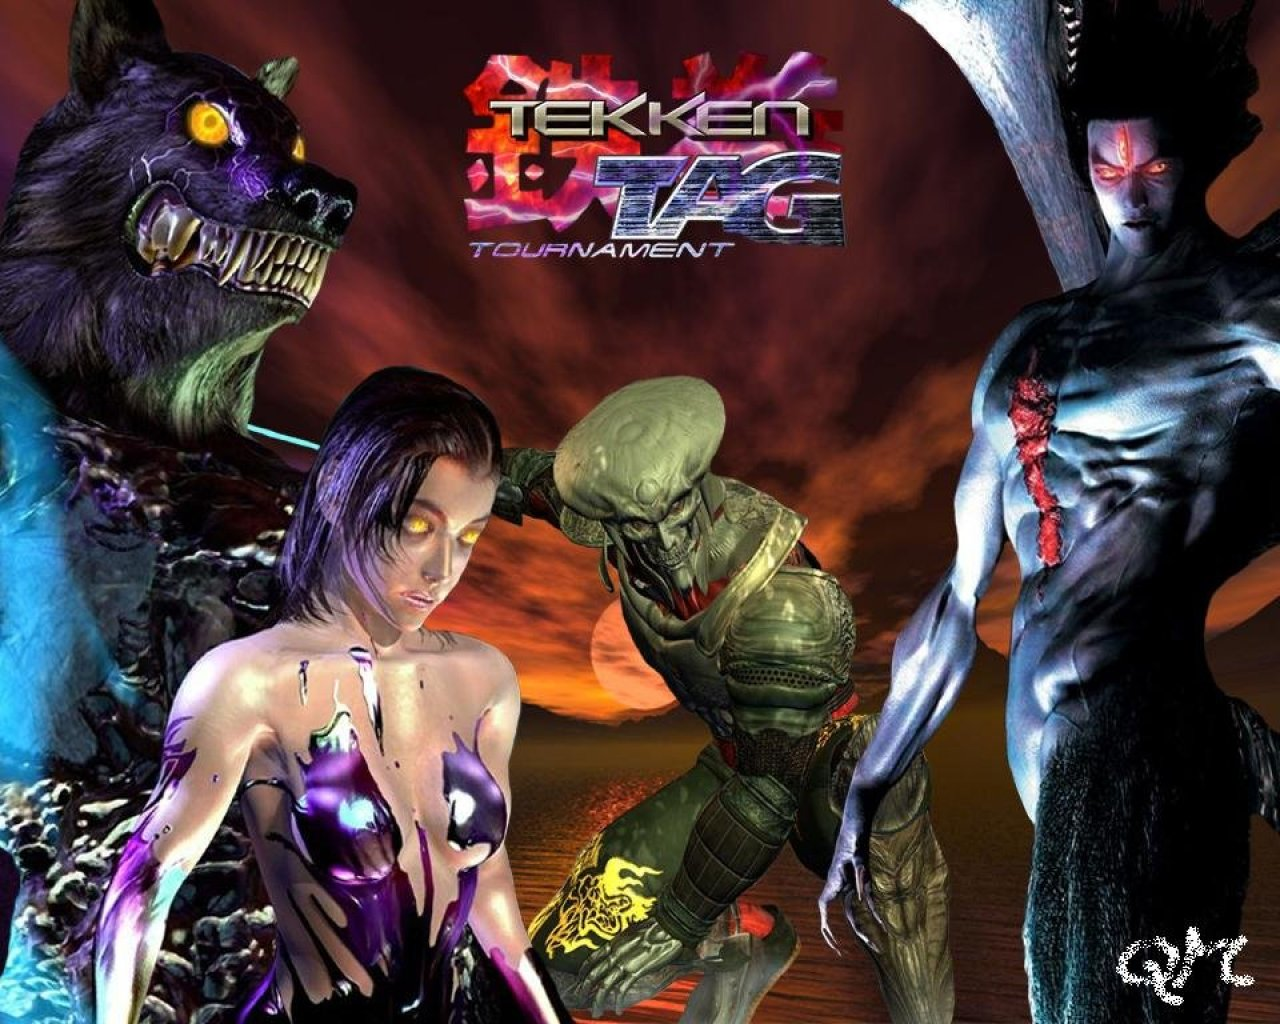 Tekken Tag Wallpapers   Download Tekken Tag Wallpapers   Tekken 1280x1024